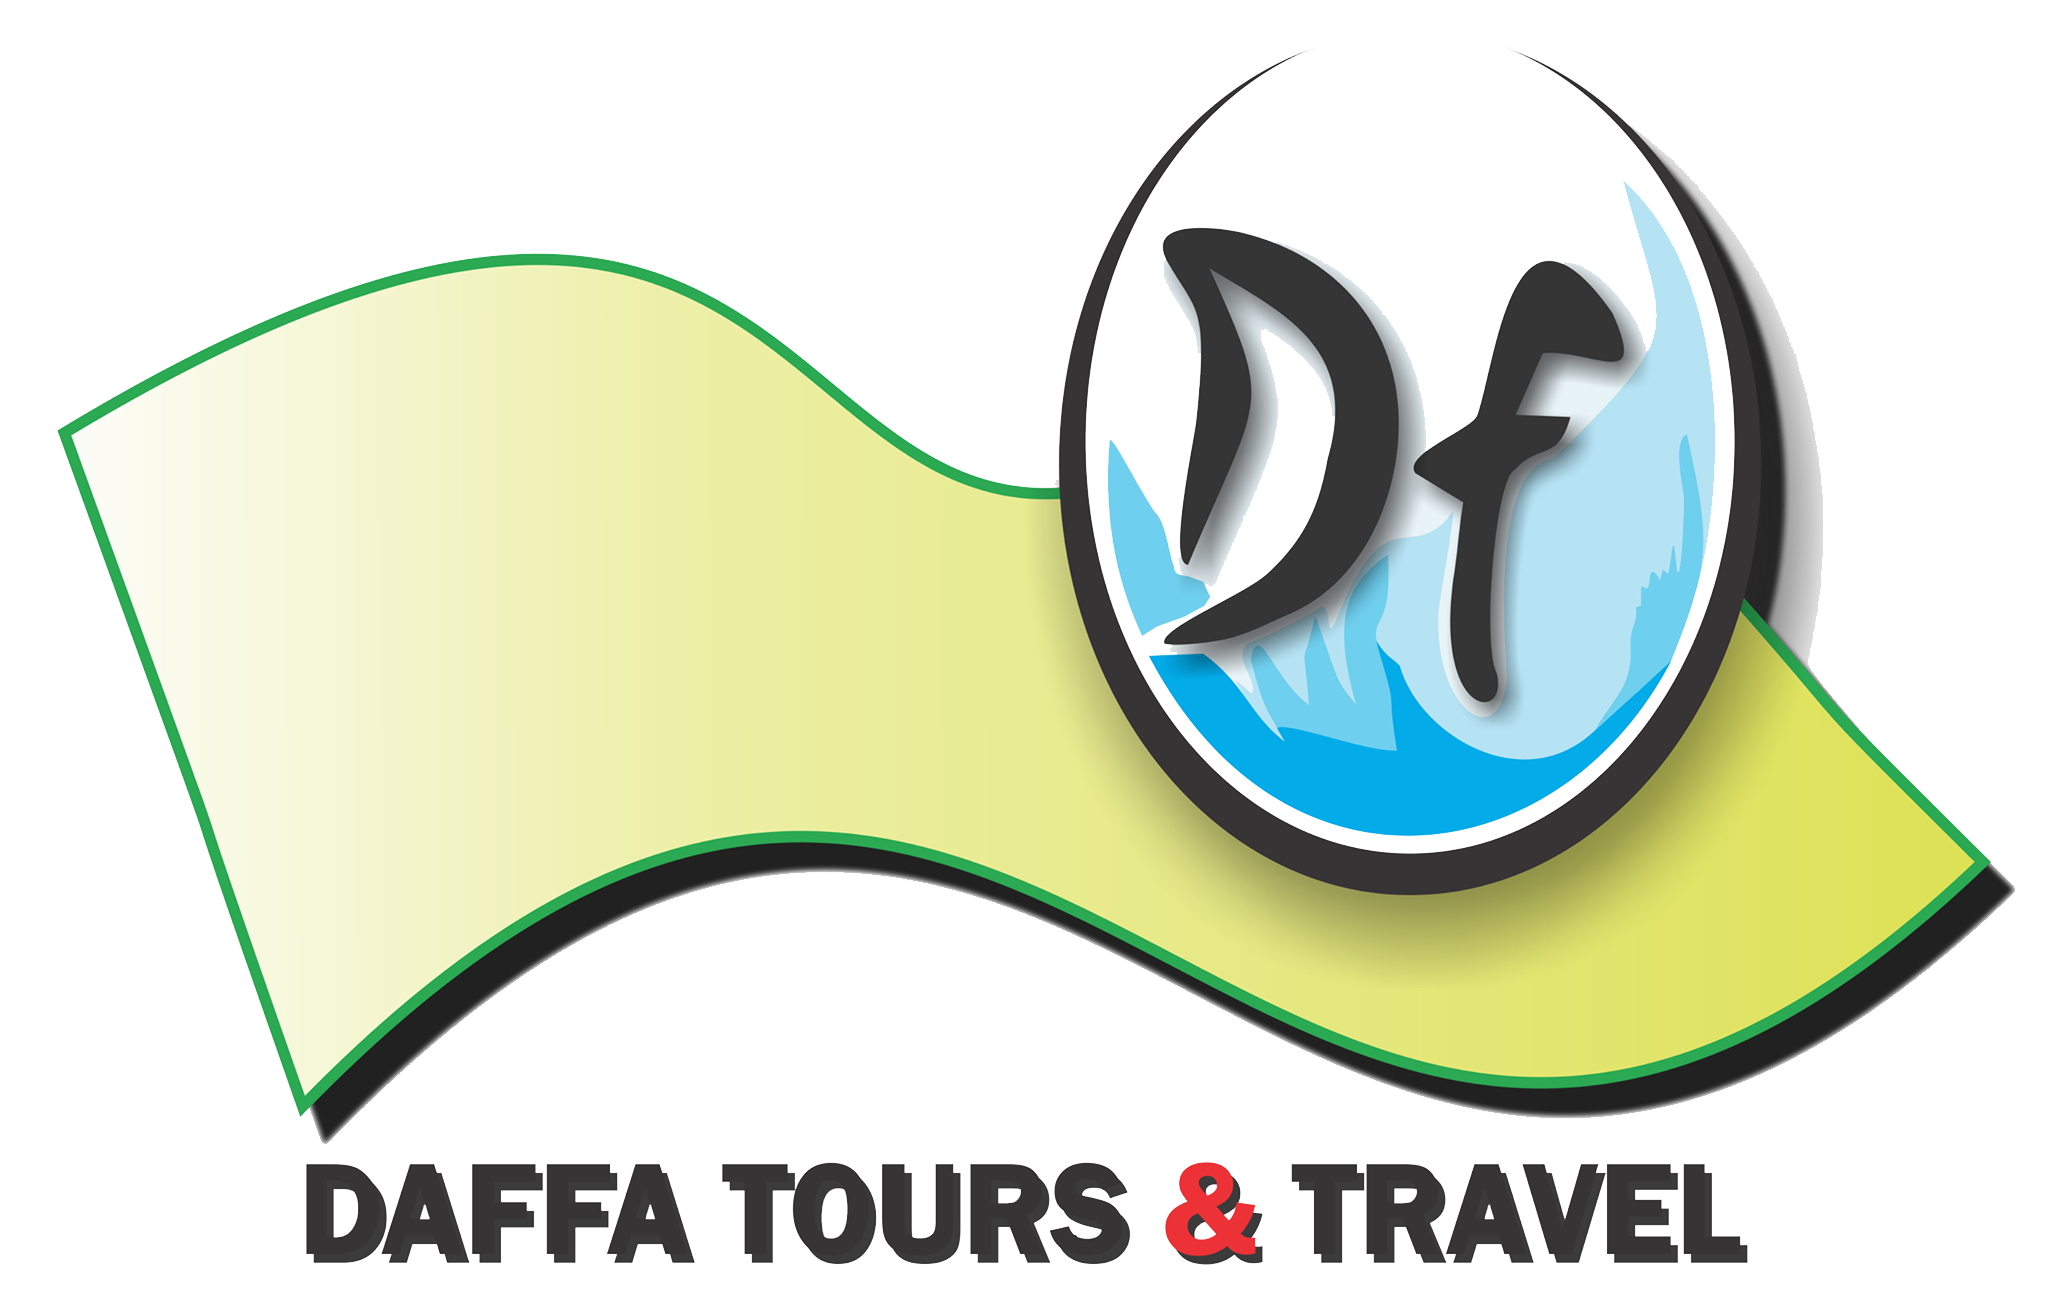 Daffa Tours & Travel